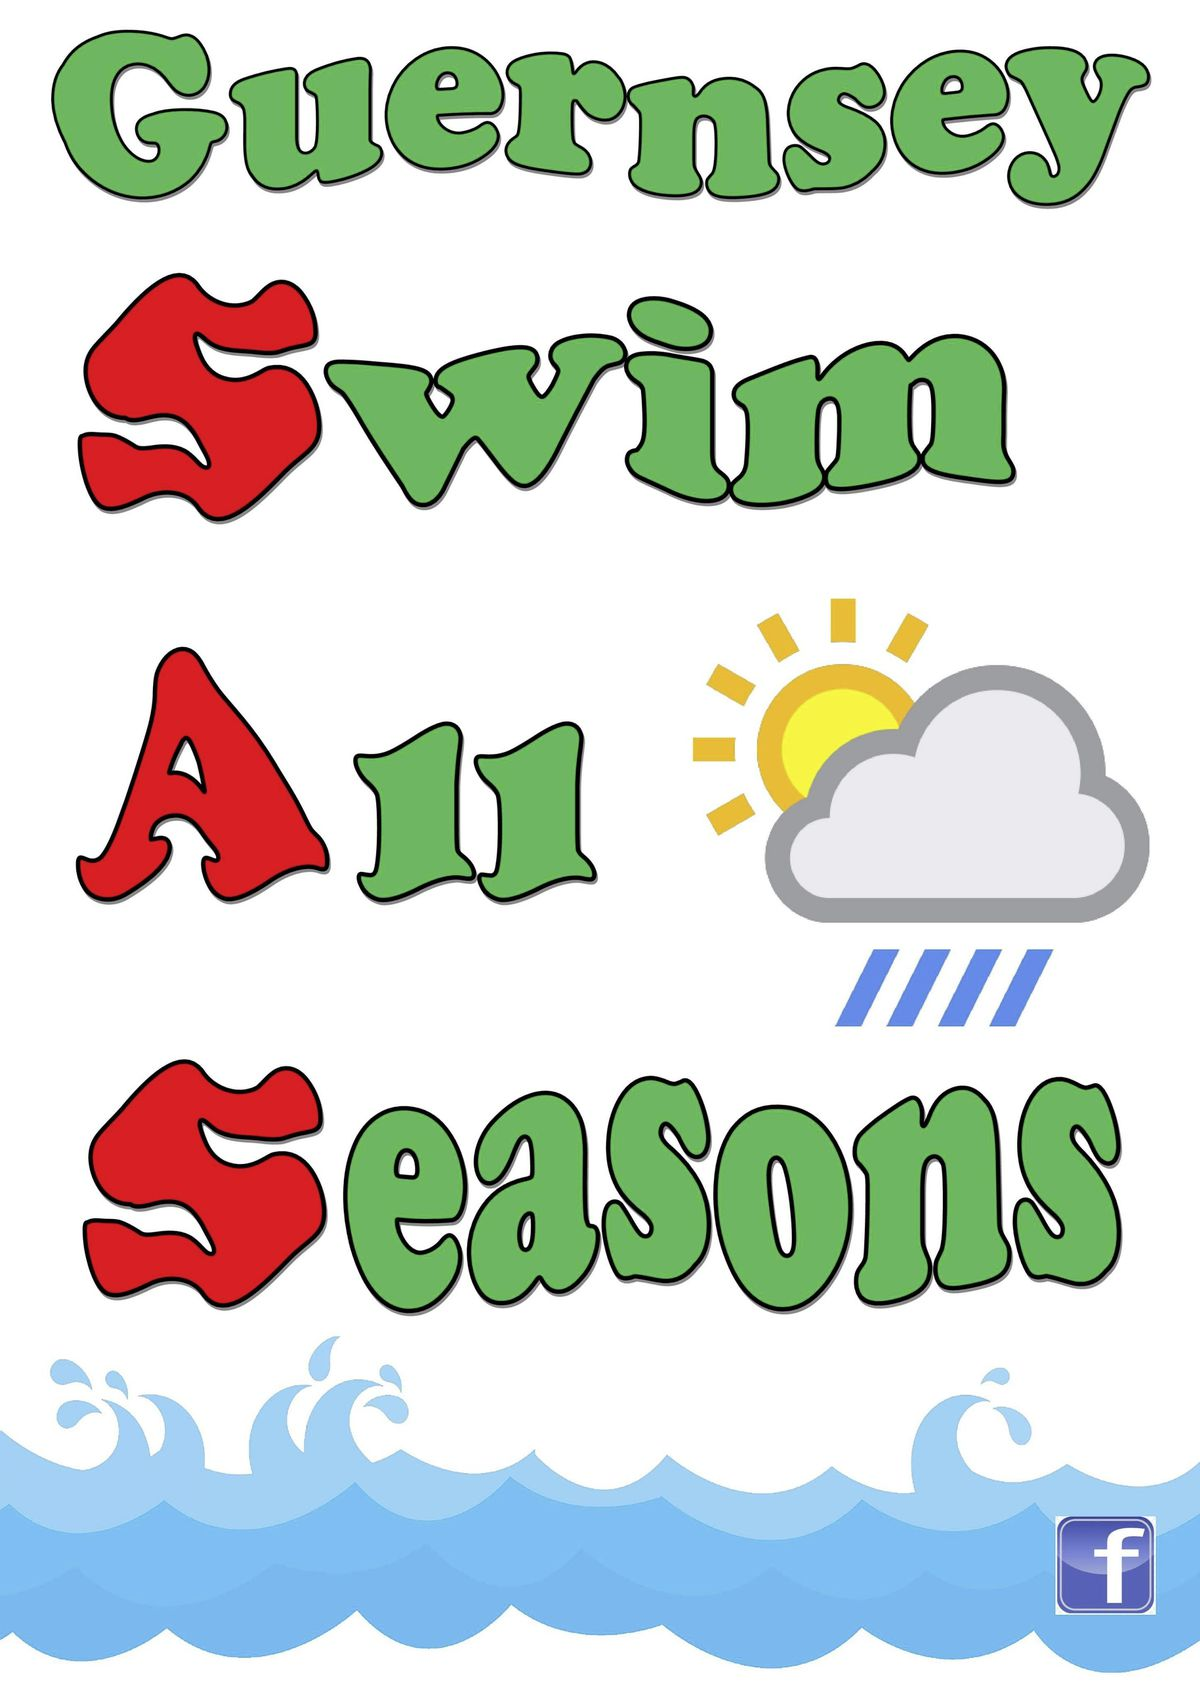 Guernsey Swimming All Seasons (29017344)